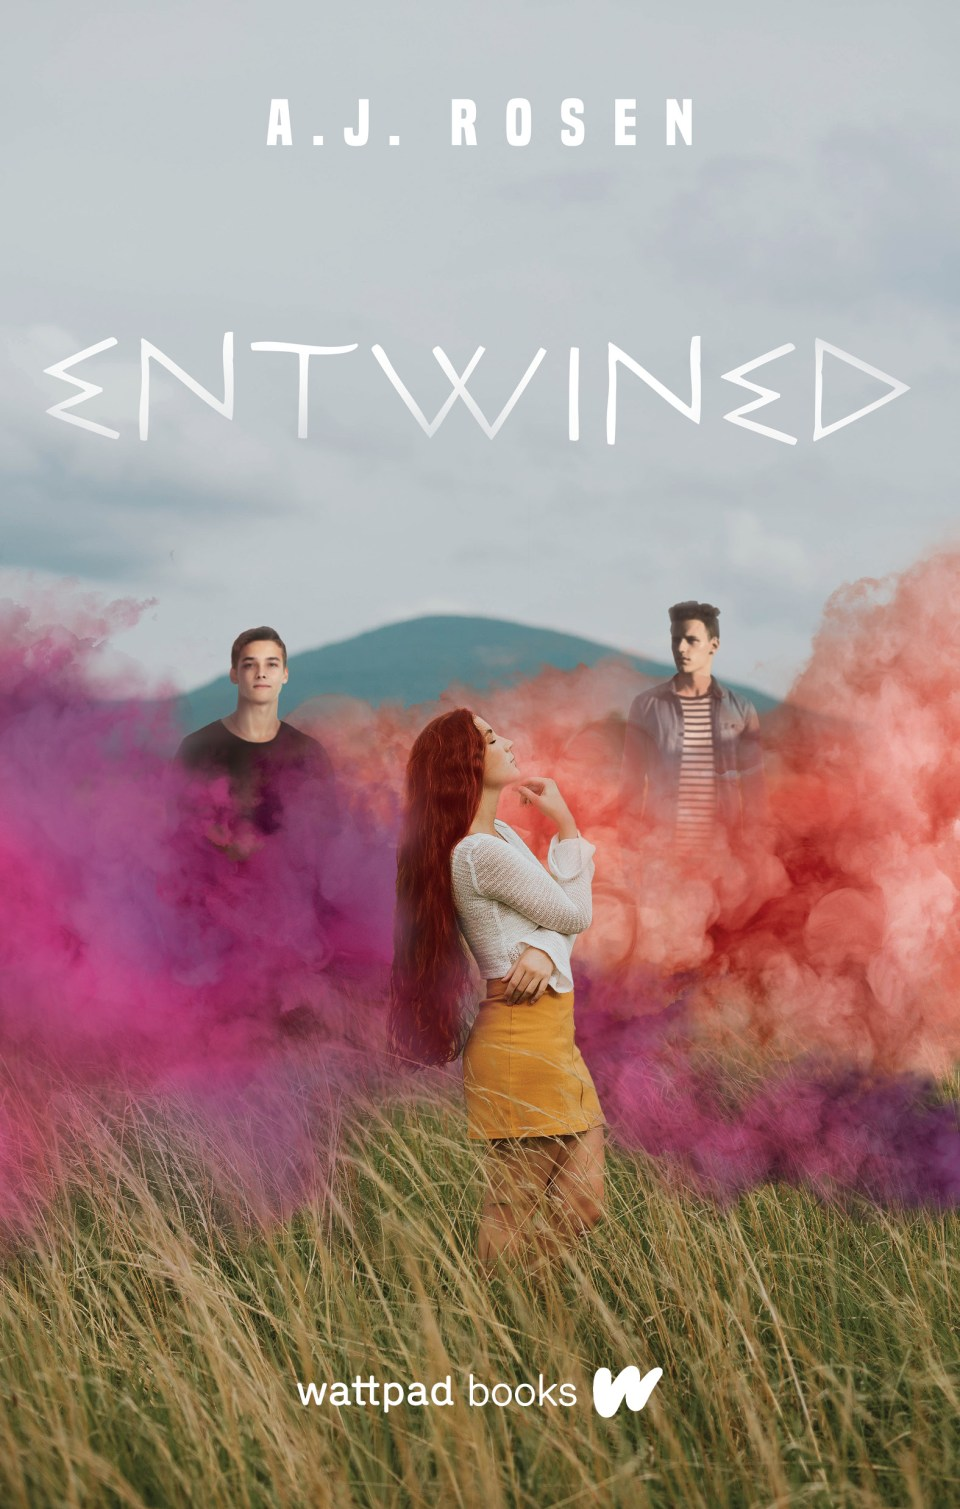 WattpadBooks_SoftCover_Entwined_FINAL_March 4 2020